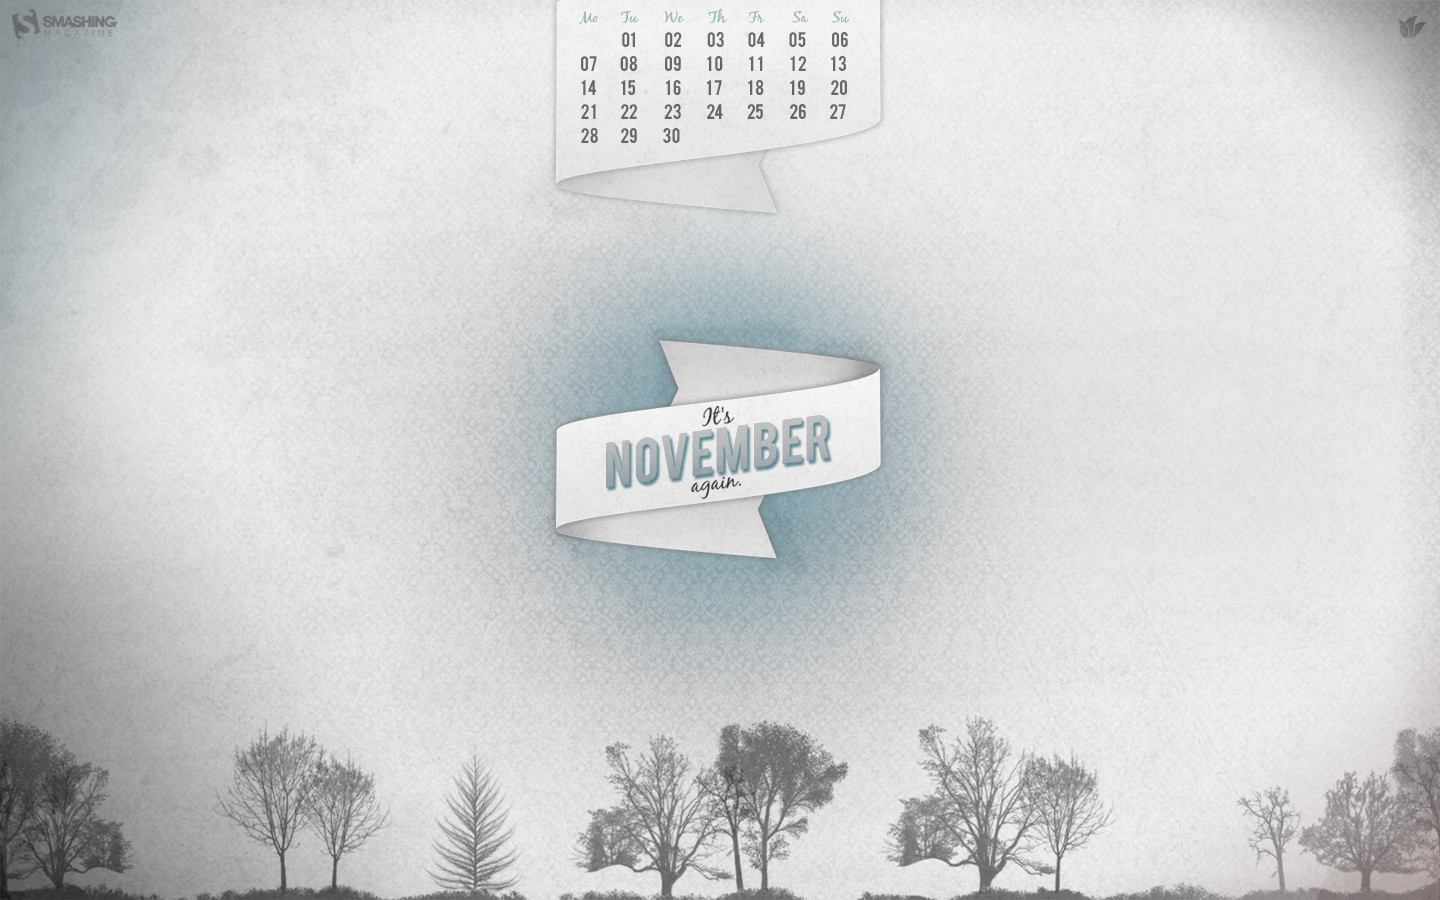 In January Calendar Wallpaper 31058